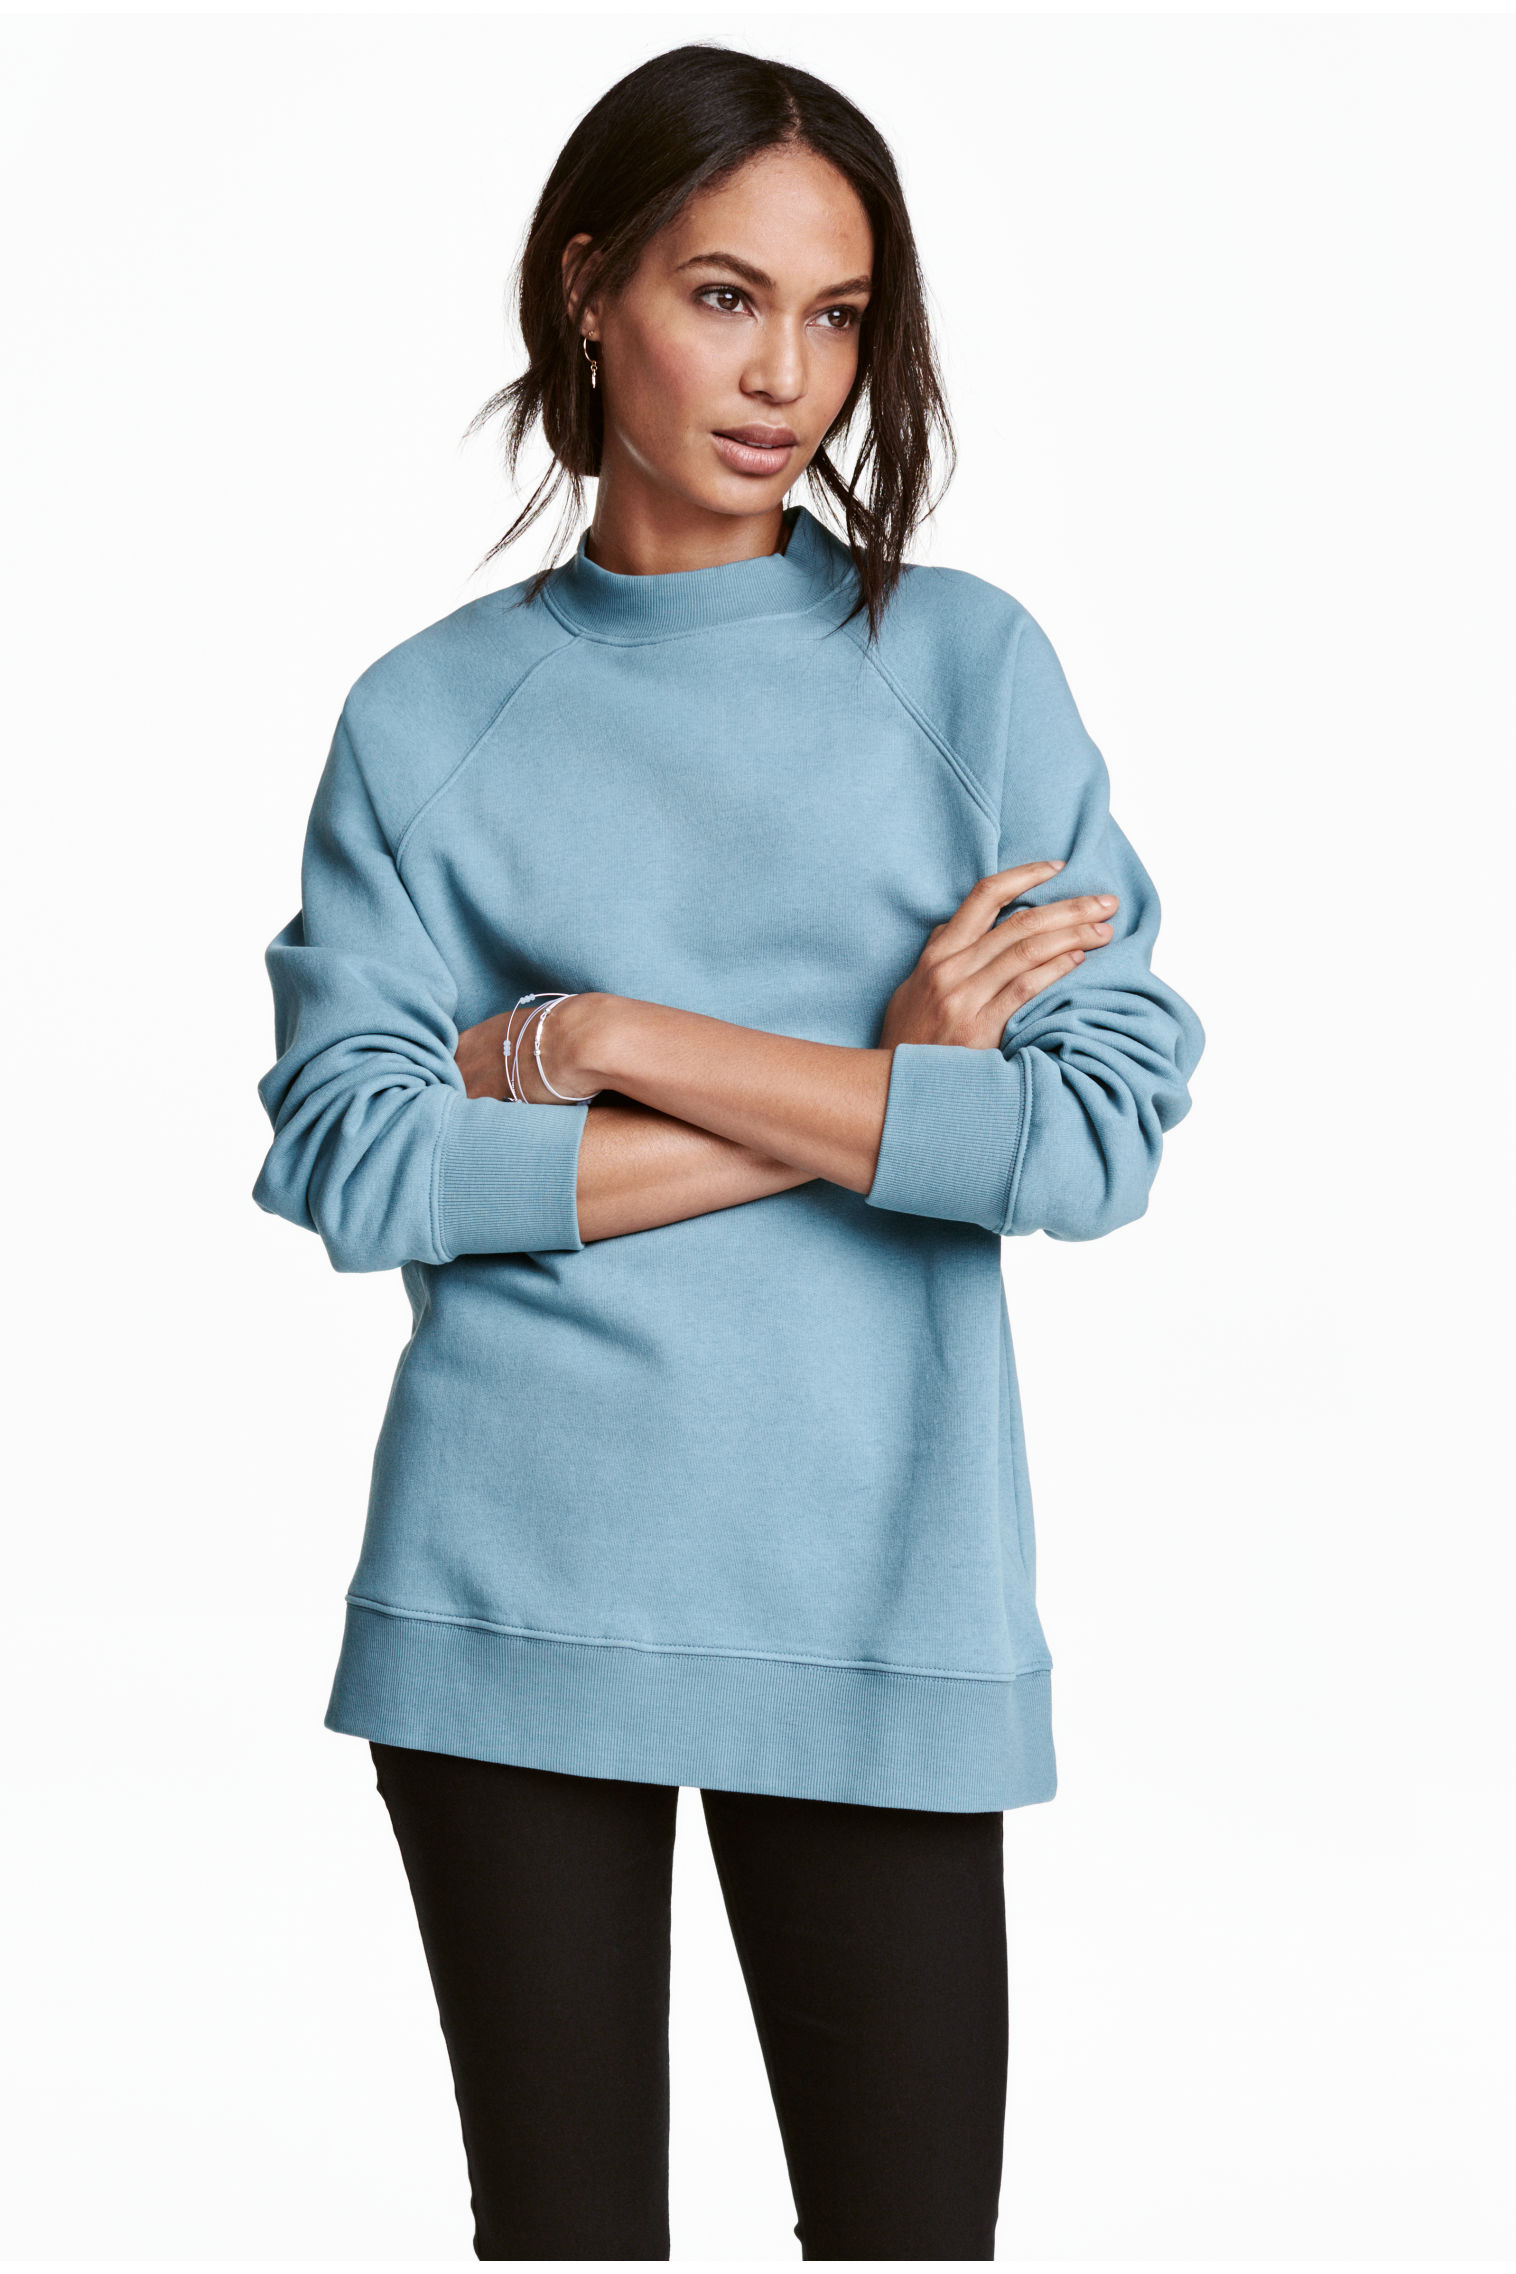 Sweatshirt with raglan sleeves - Turquoise - | H&M GB